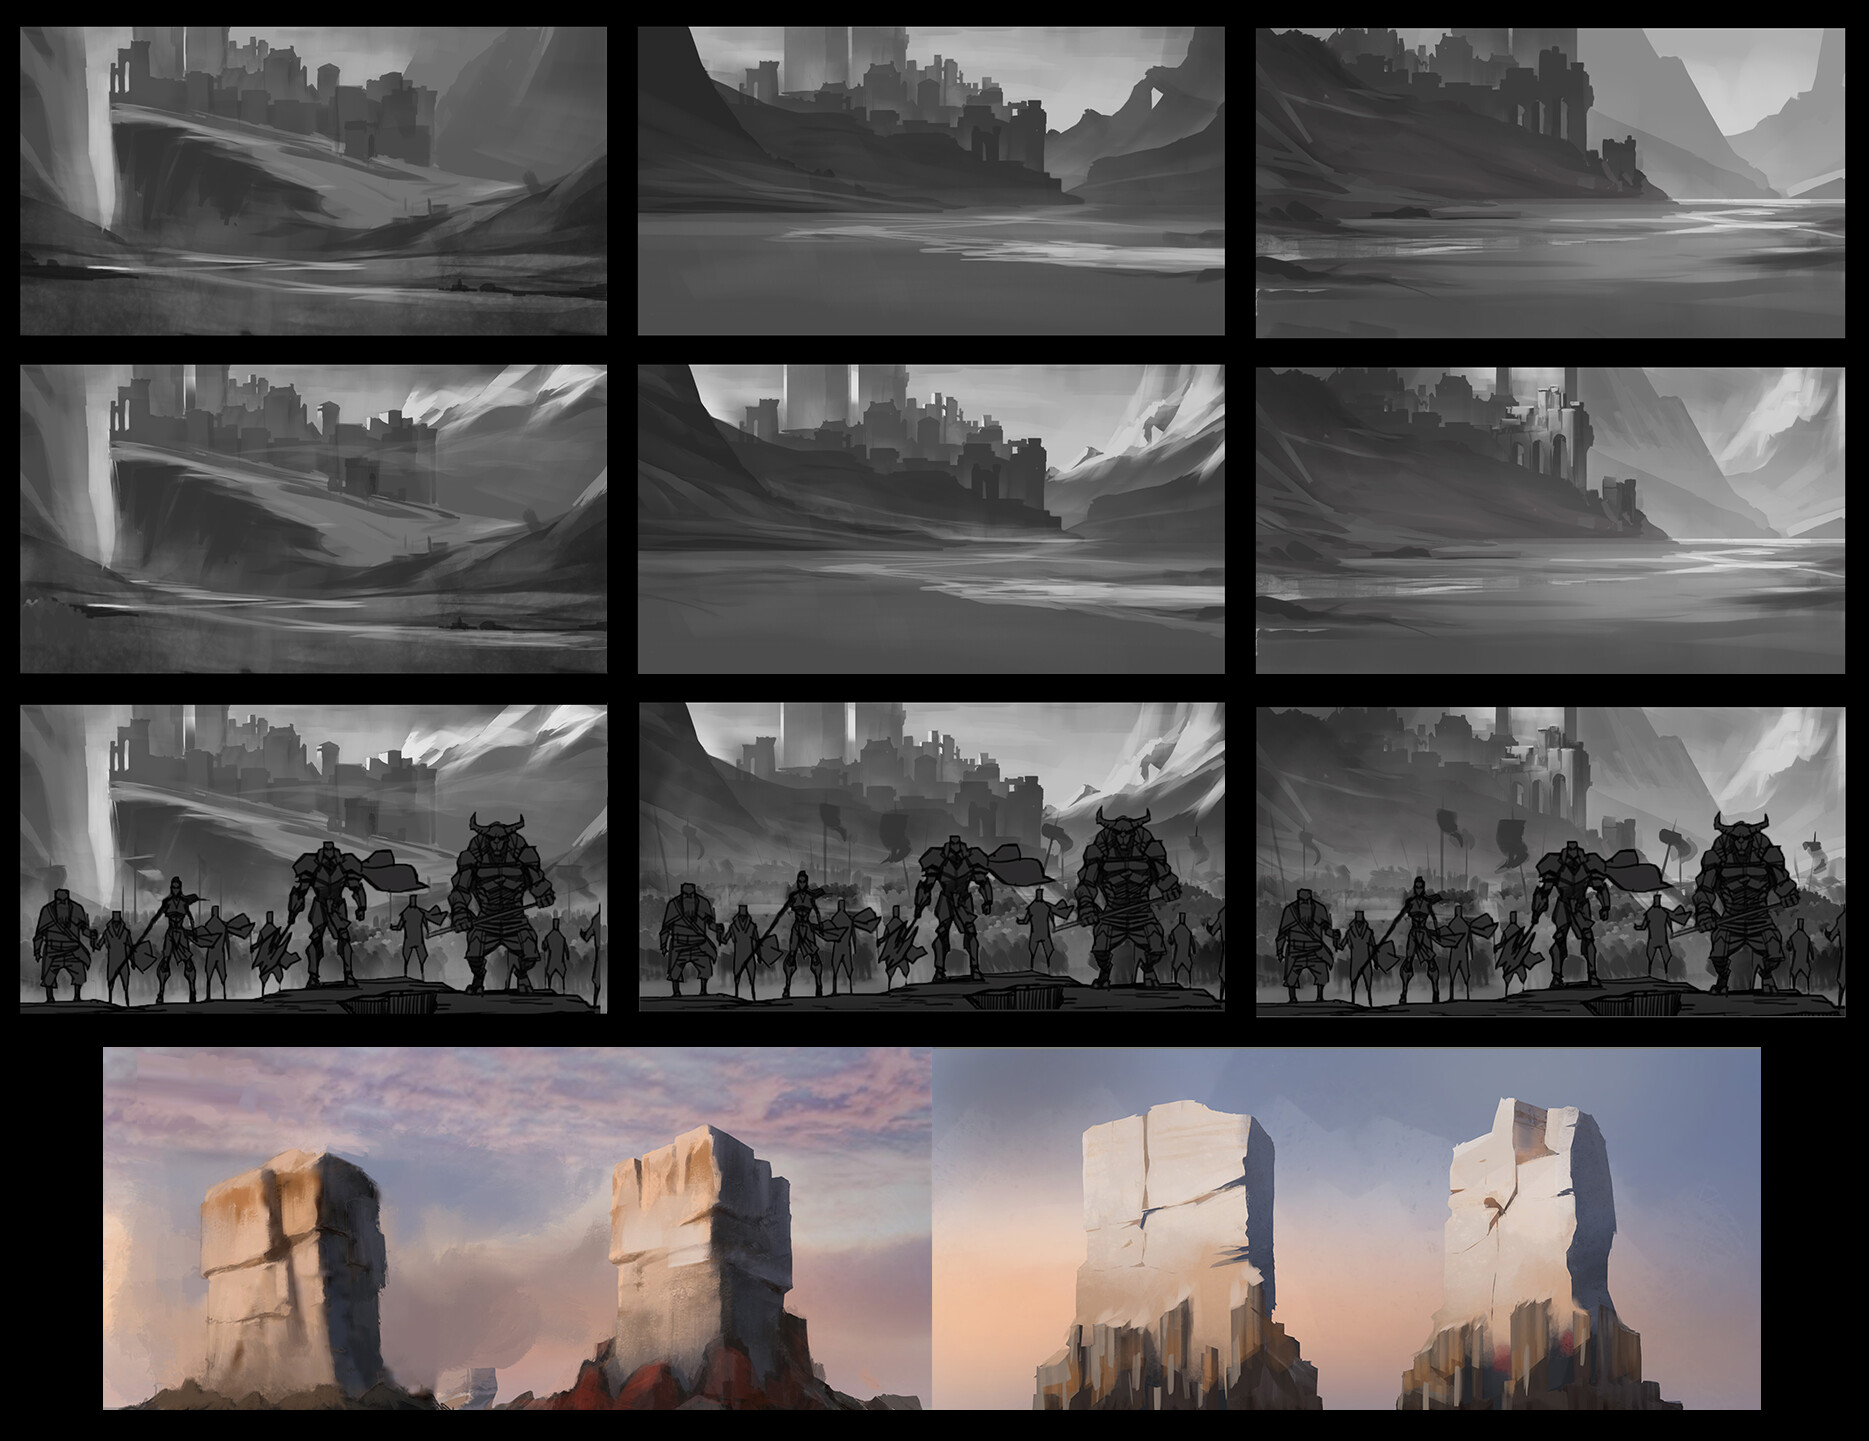 Concepts for final shot